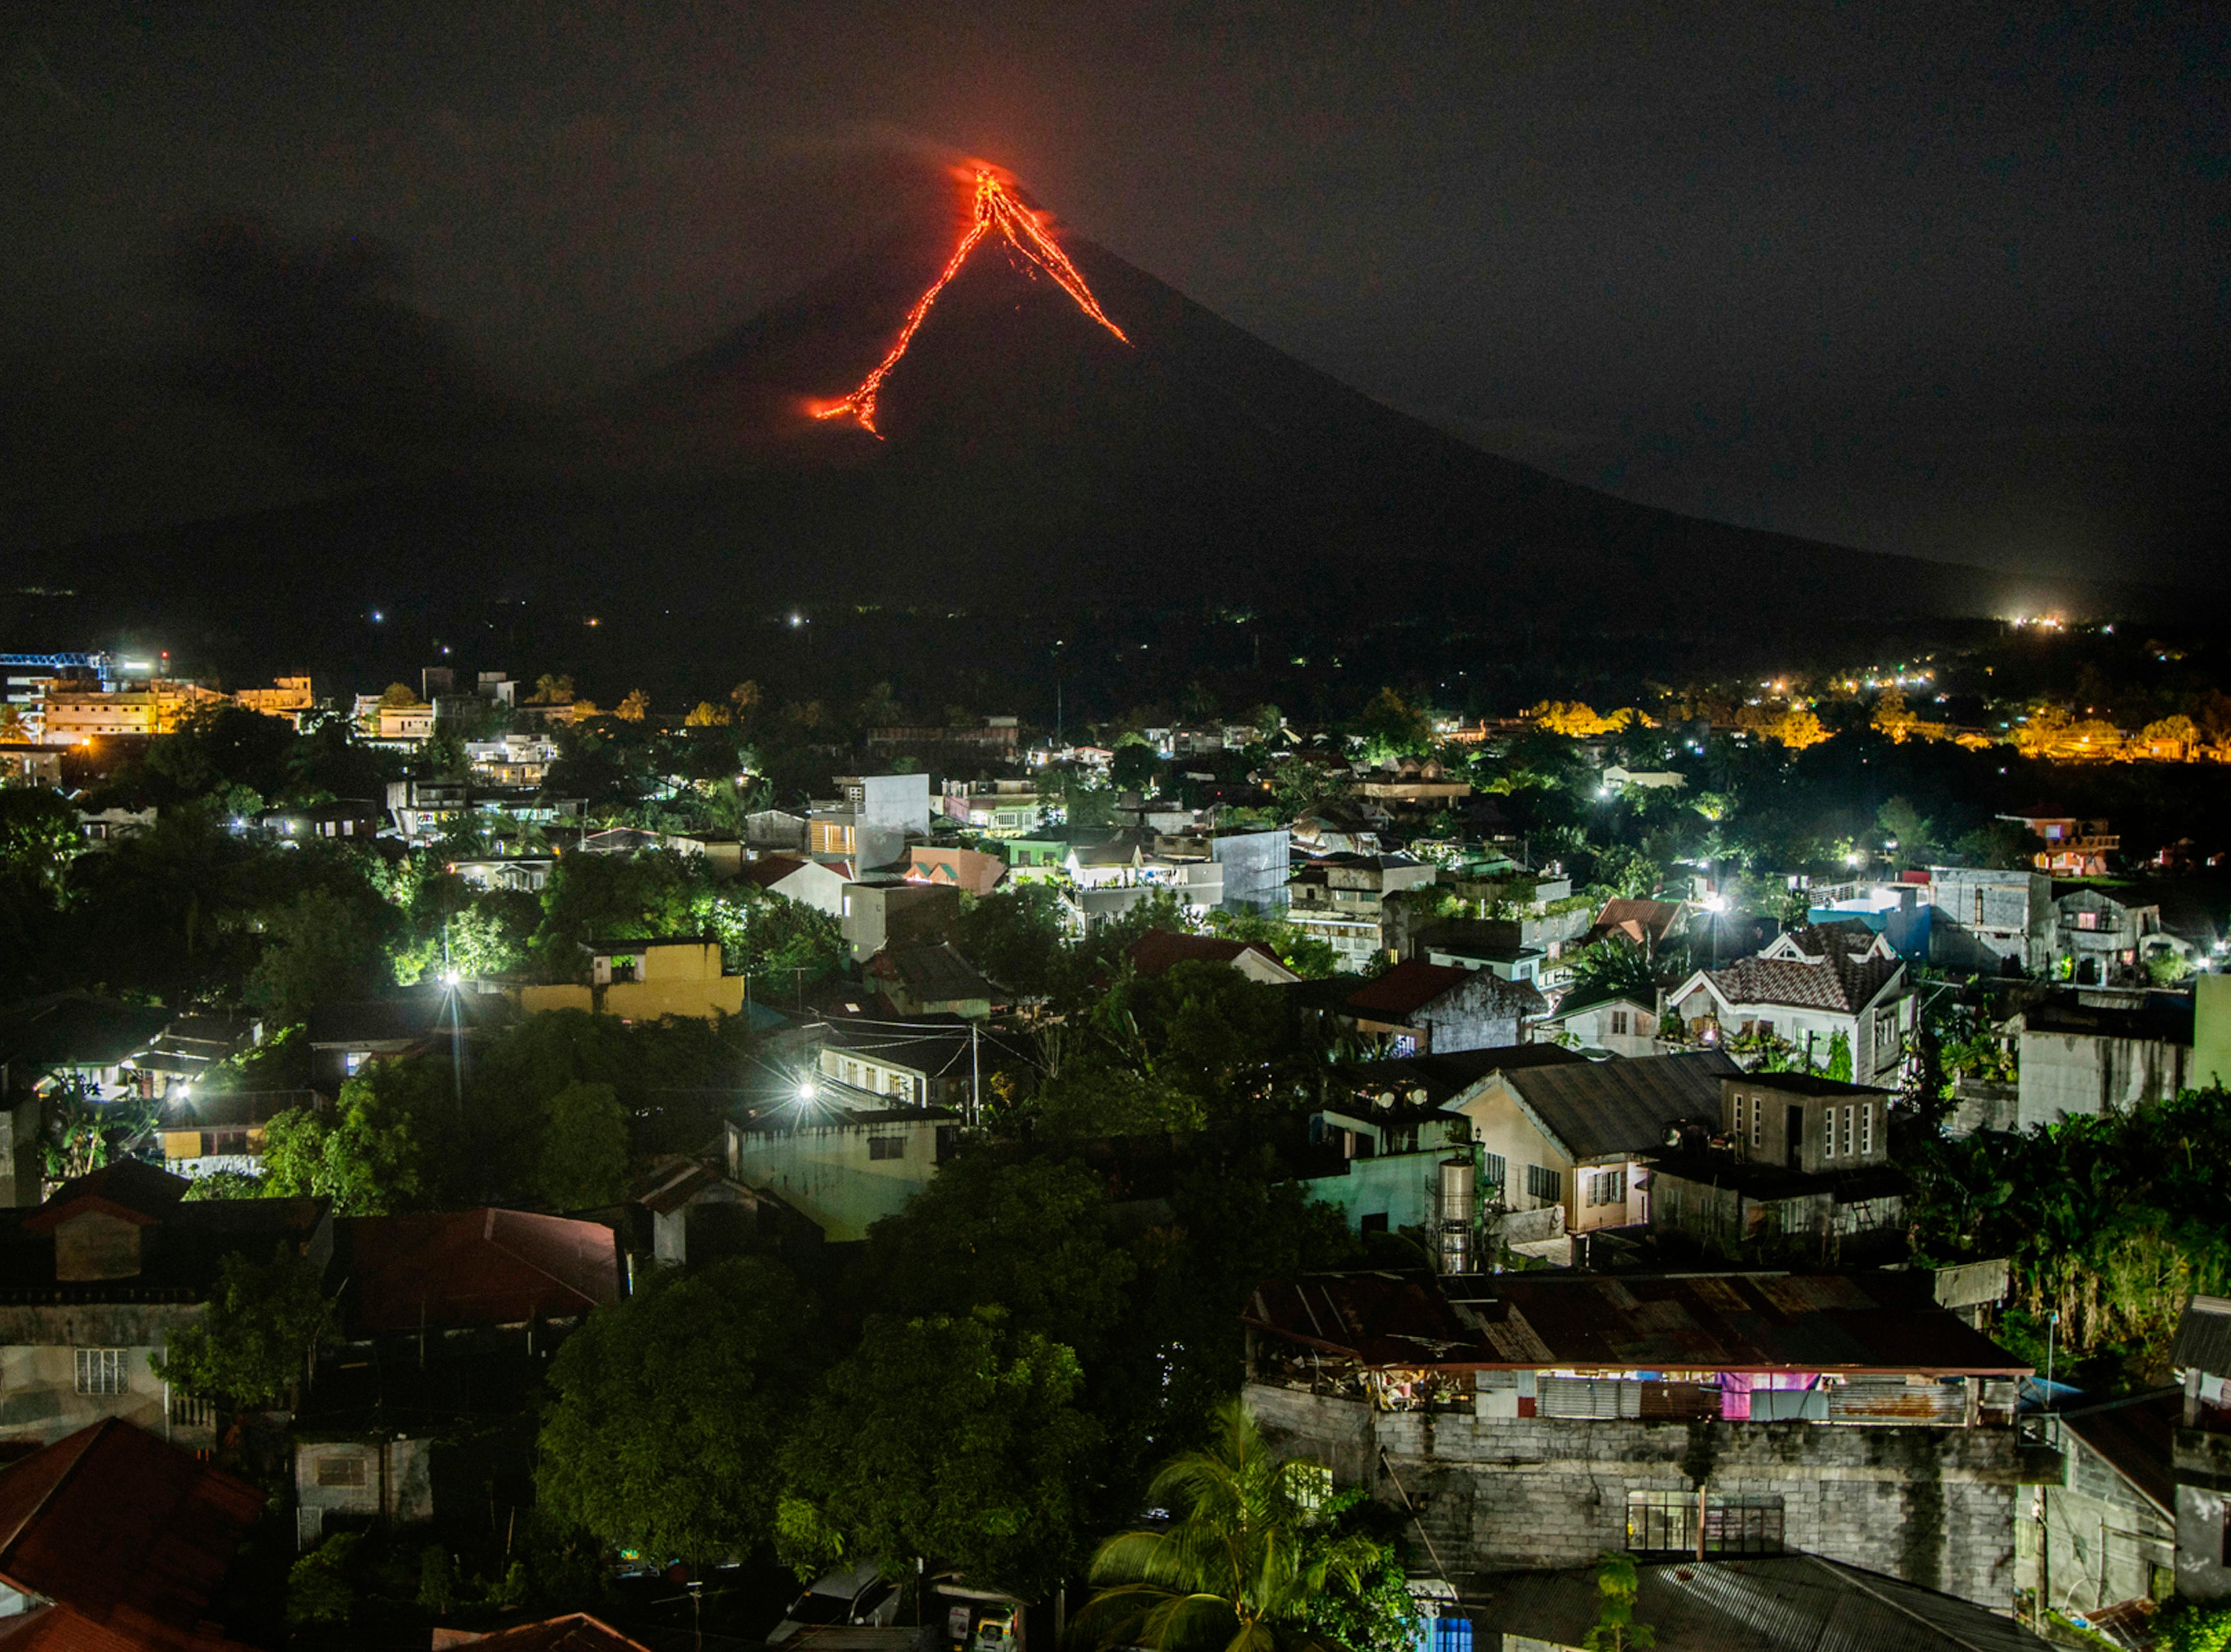 Lava flows down the slopes of the Mayon volcano in the Philippines, seen from Legazpi city, 210 miles southeast of Manila, on Jan. 16, 2018.